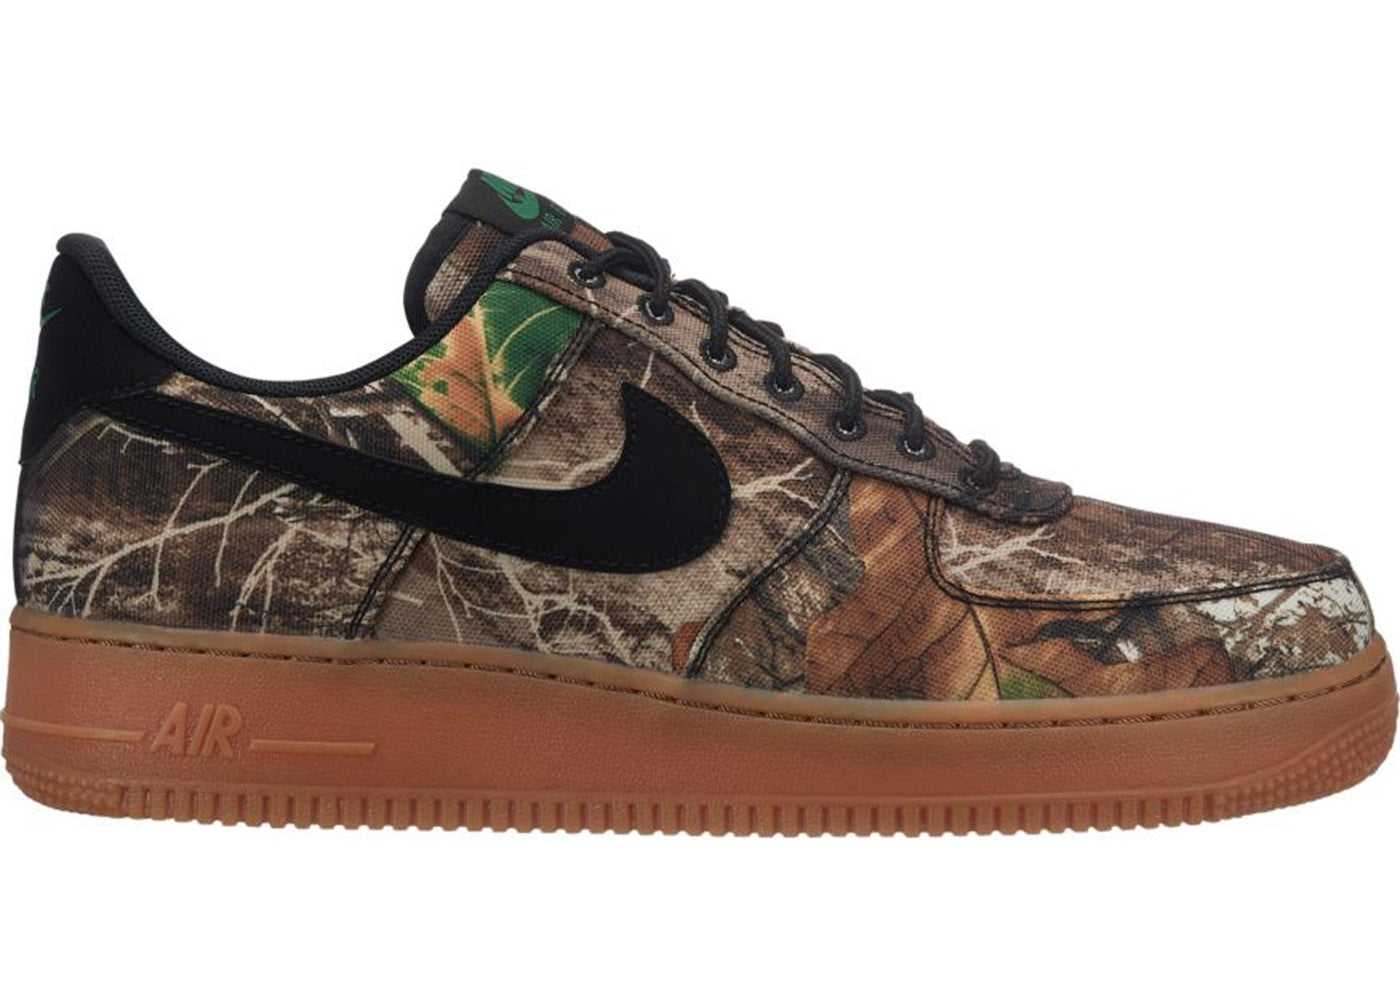 Nike Air Force 1 '07 'Realtree Camo'